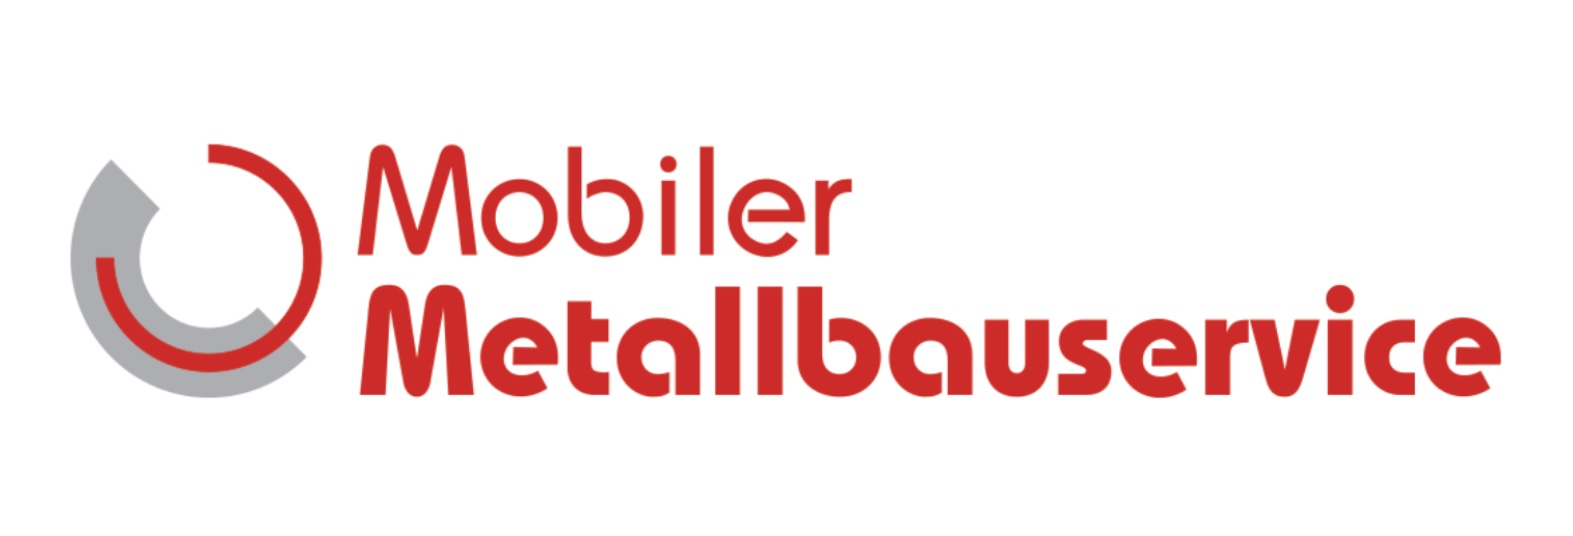 Mobiler Metallbauservice Halle